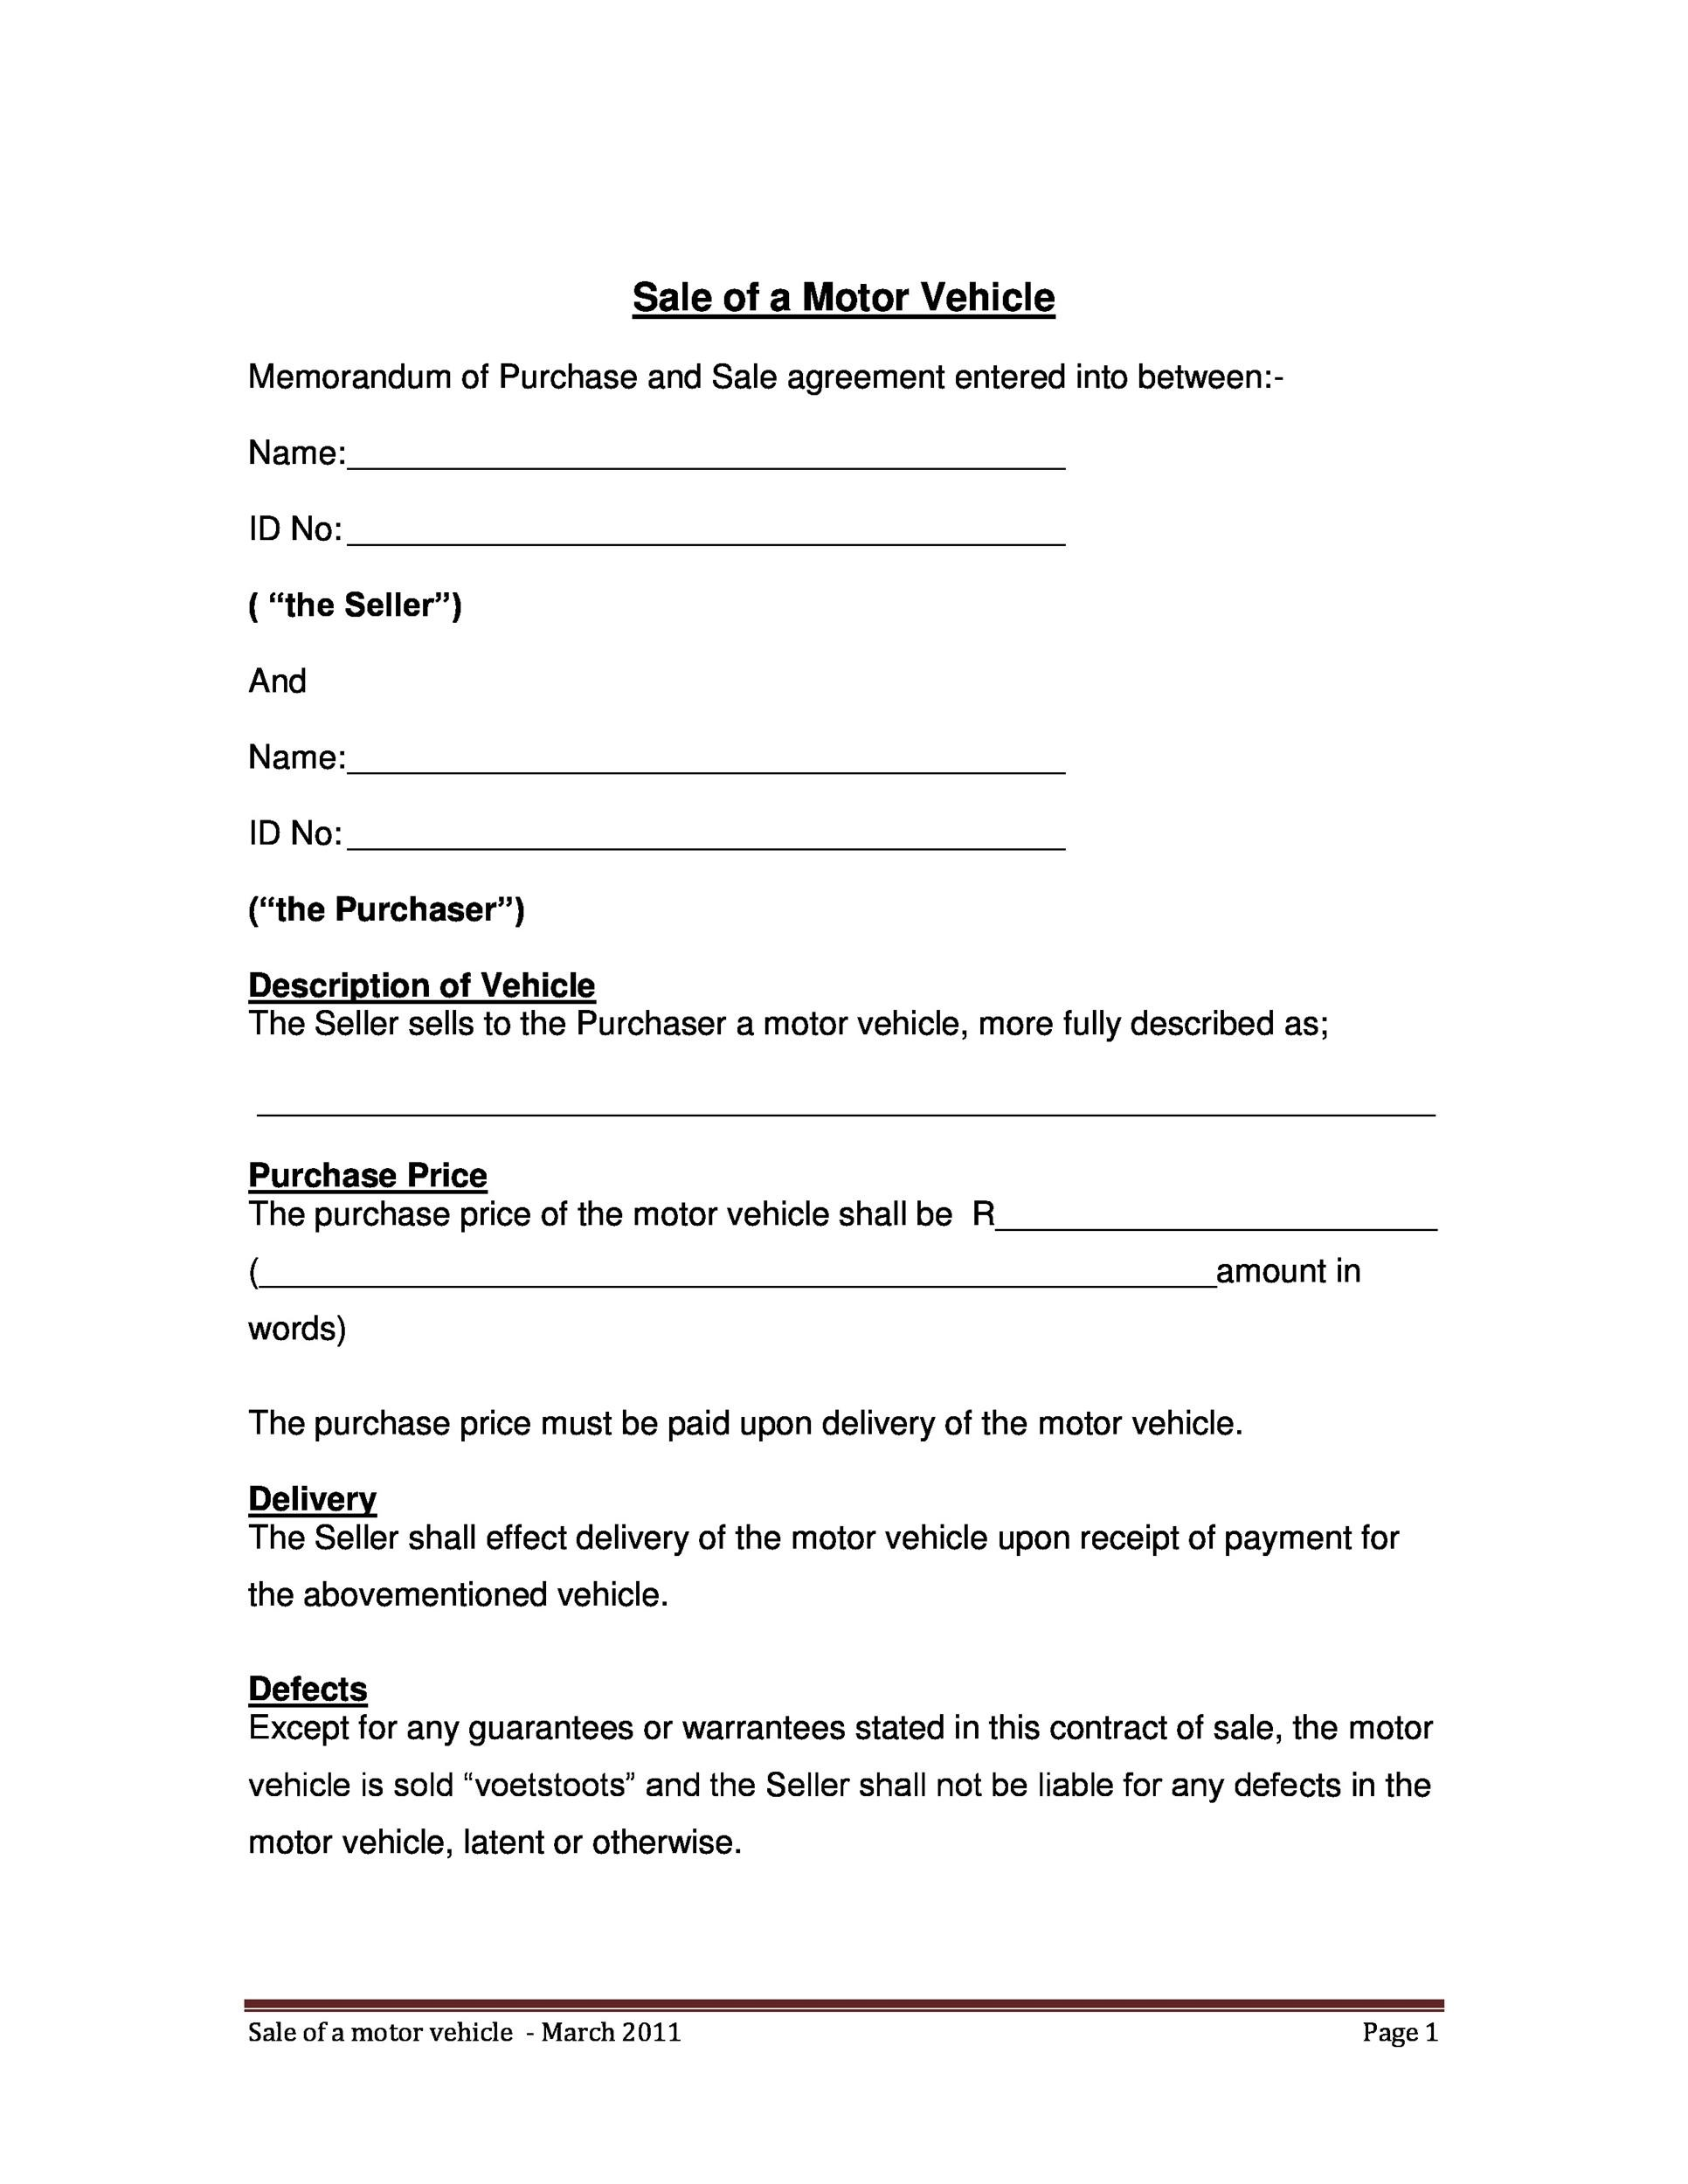 hire purchase agreement forms for motor vehicles pdf  42 Printable Vehicle Purchase Agreement Templates - Template Lab